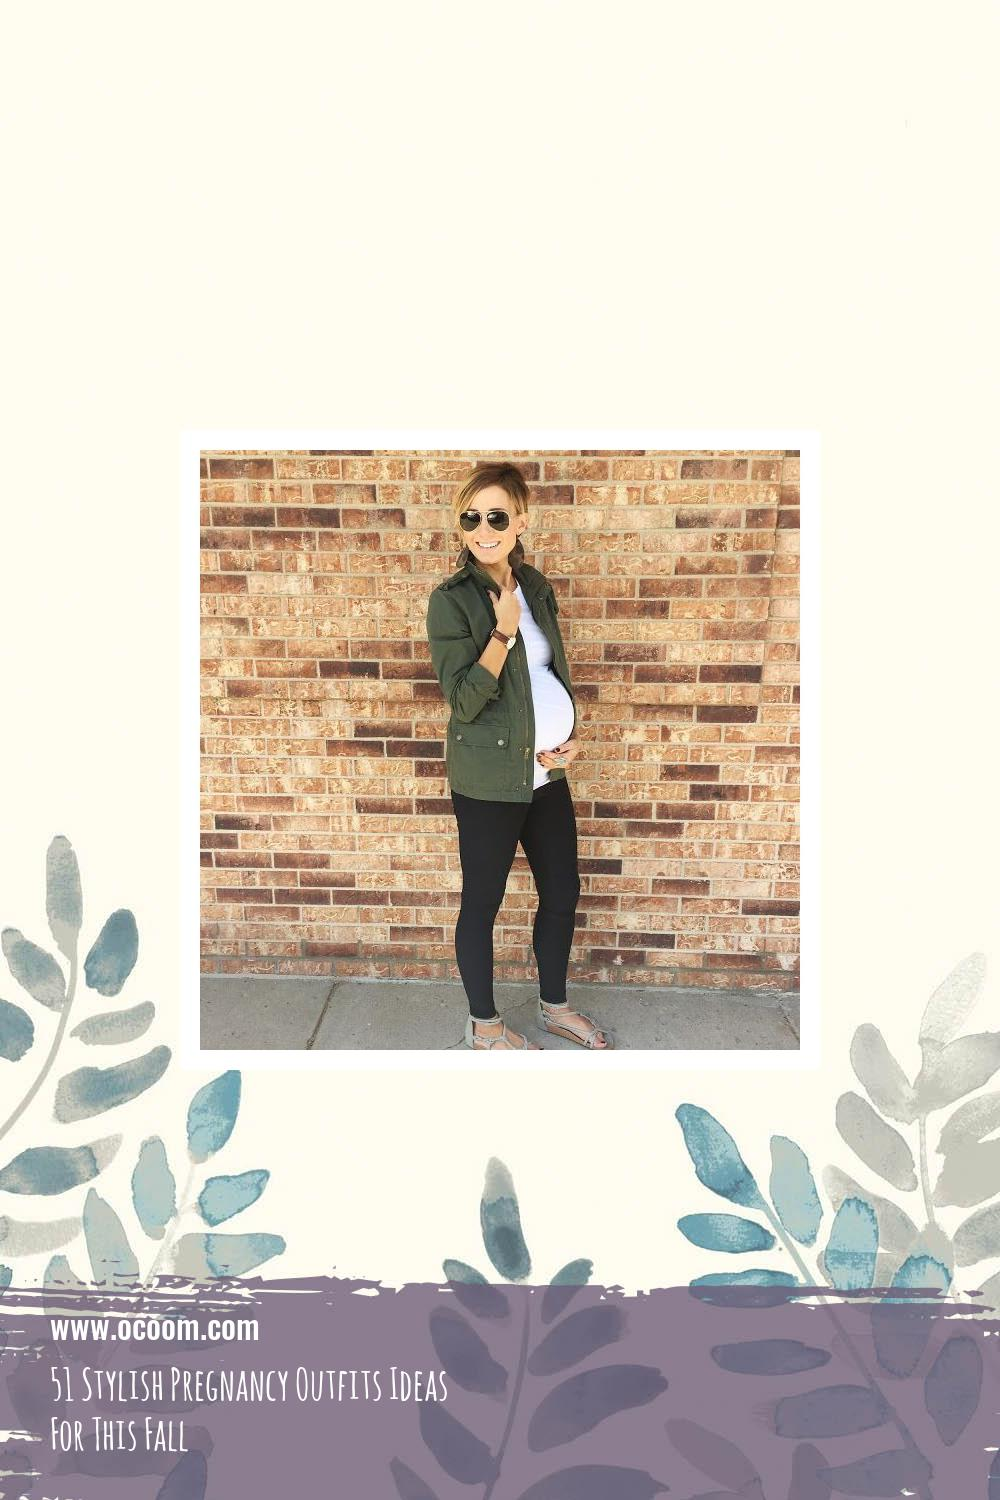 51 Stylish Pregnancy Outfits Ideas For This Fall 24